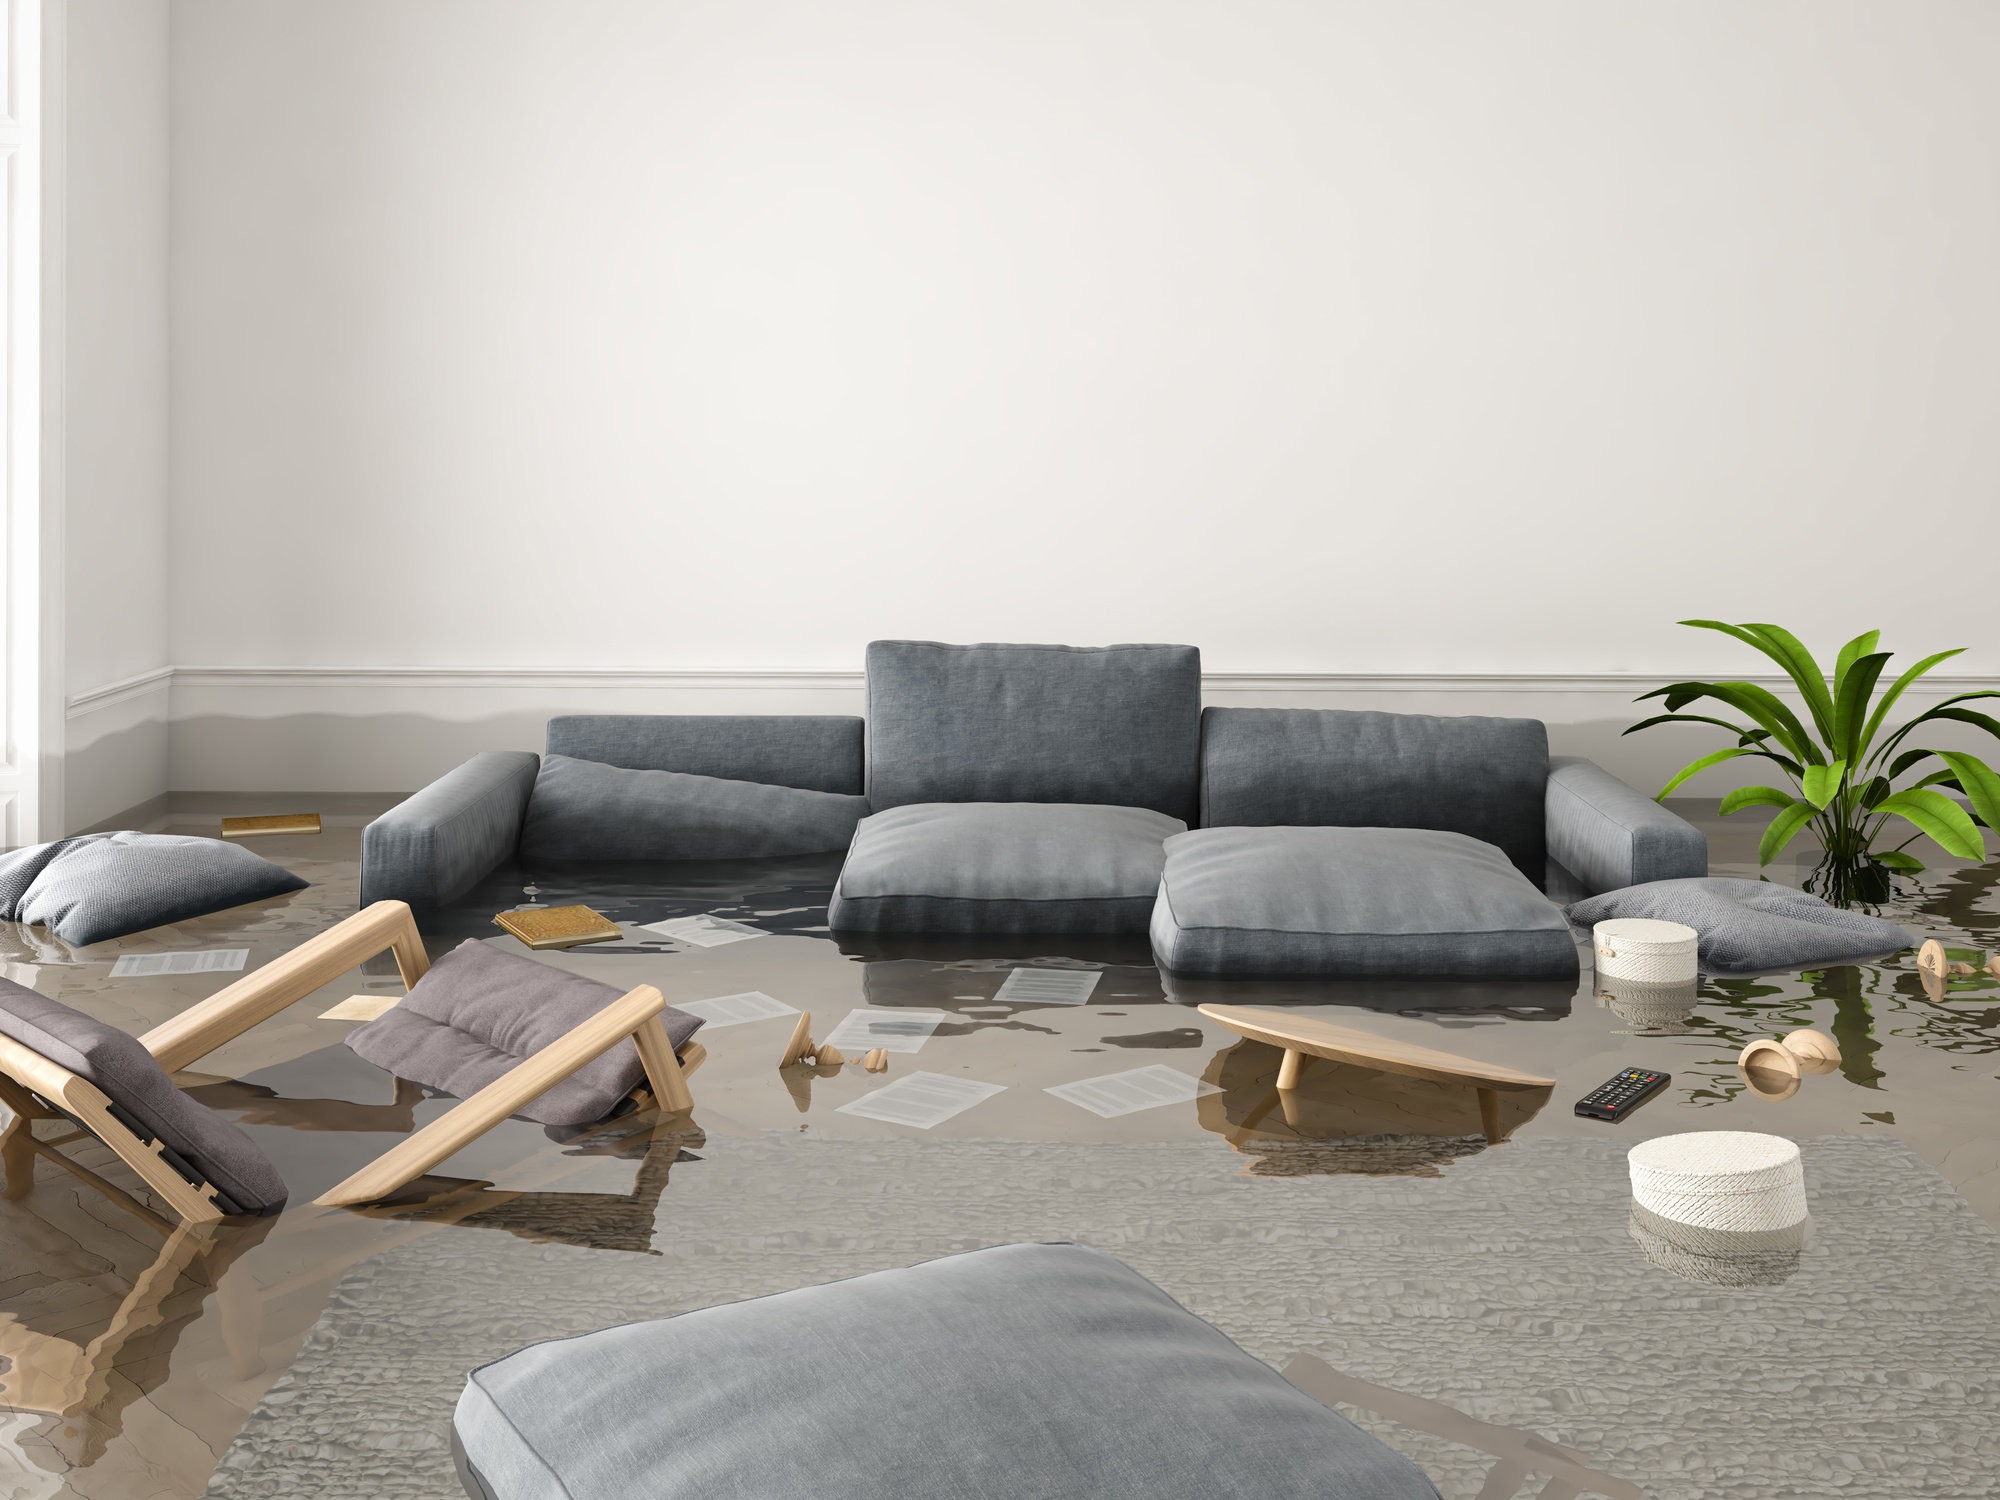 5 Critical Things to Do When Your House Floods